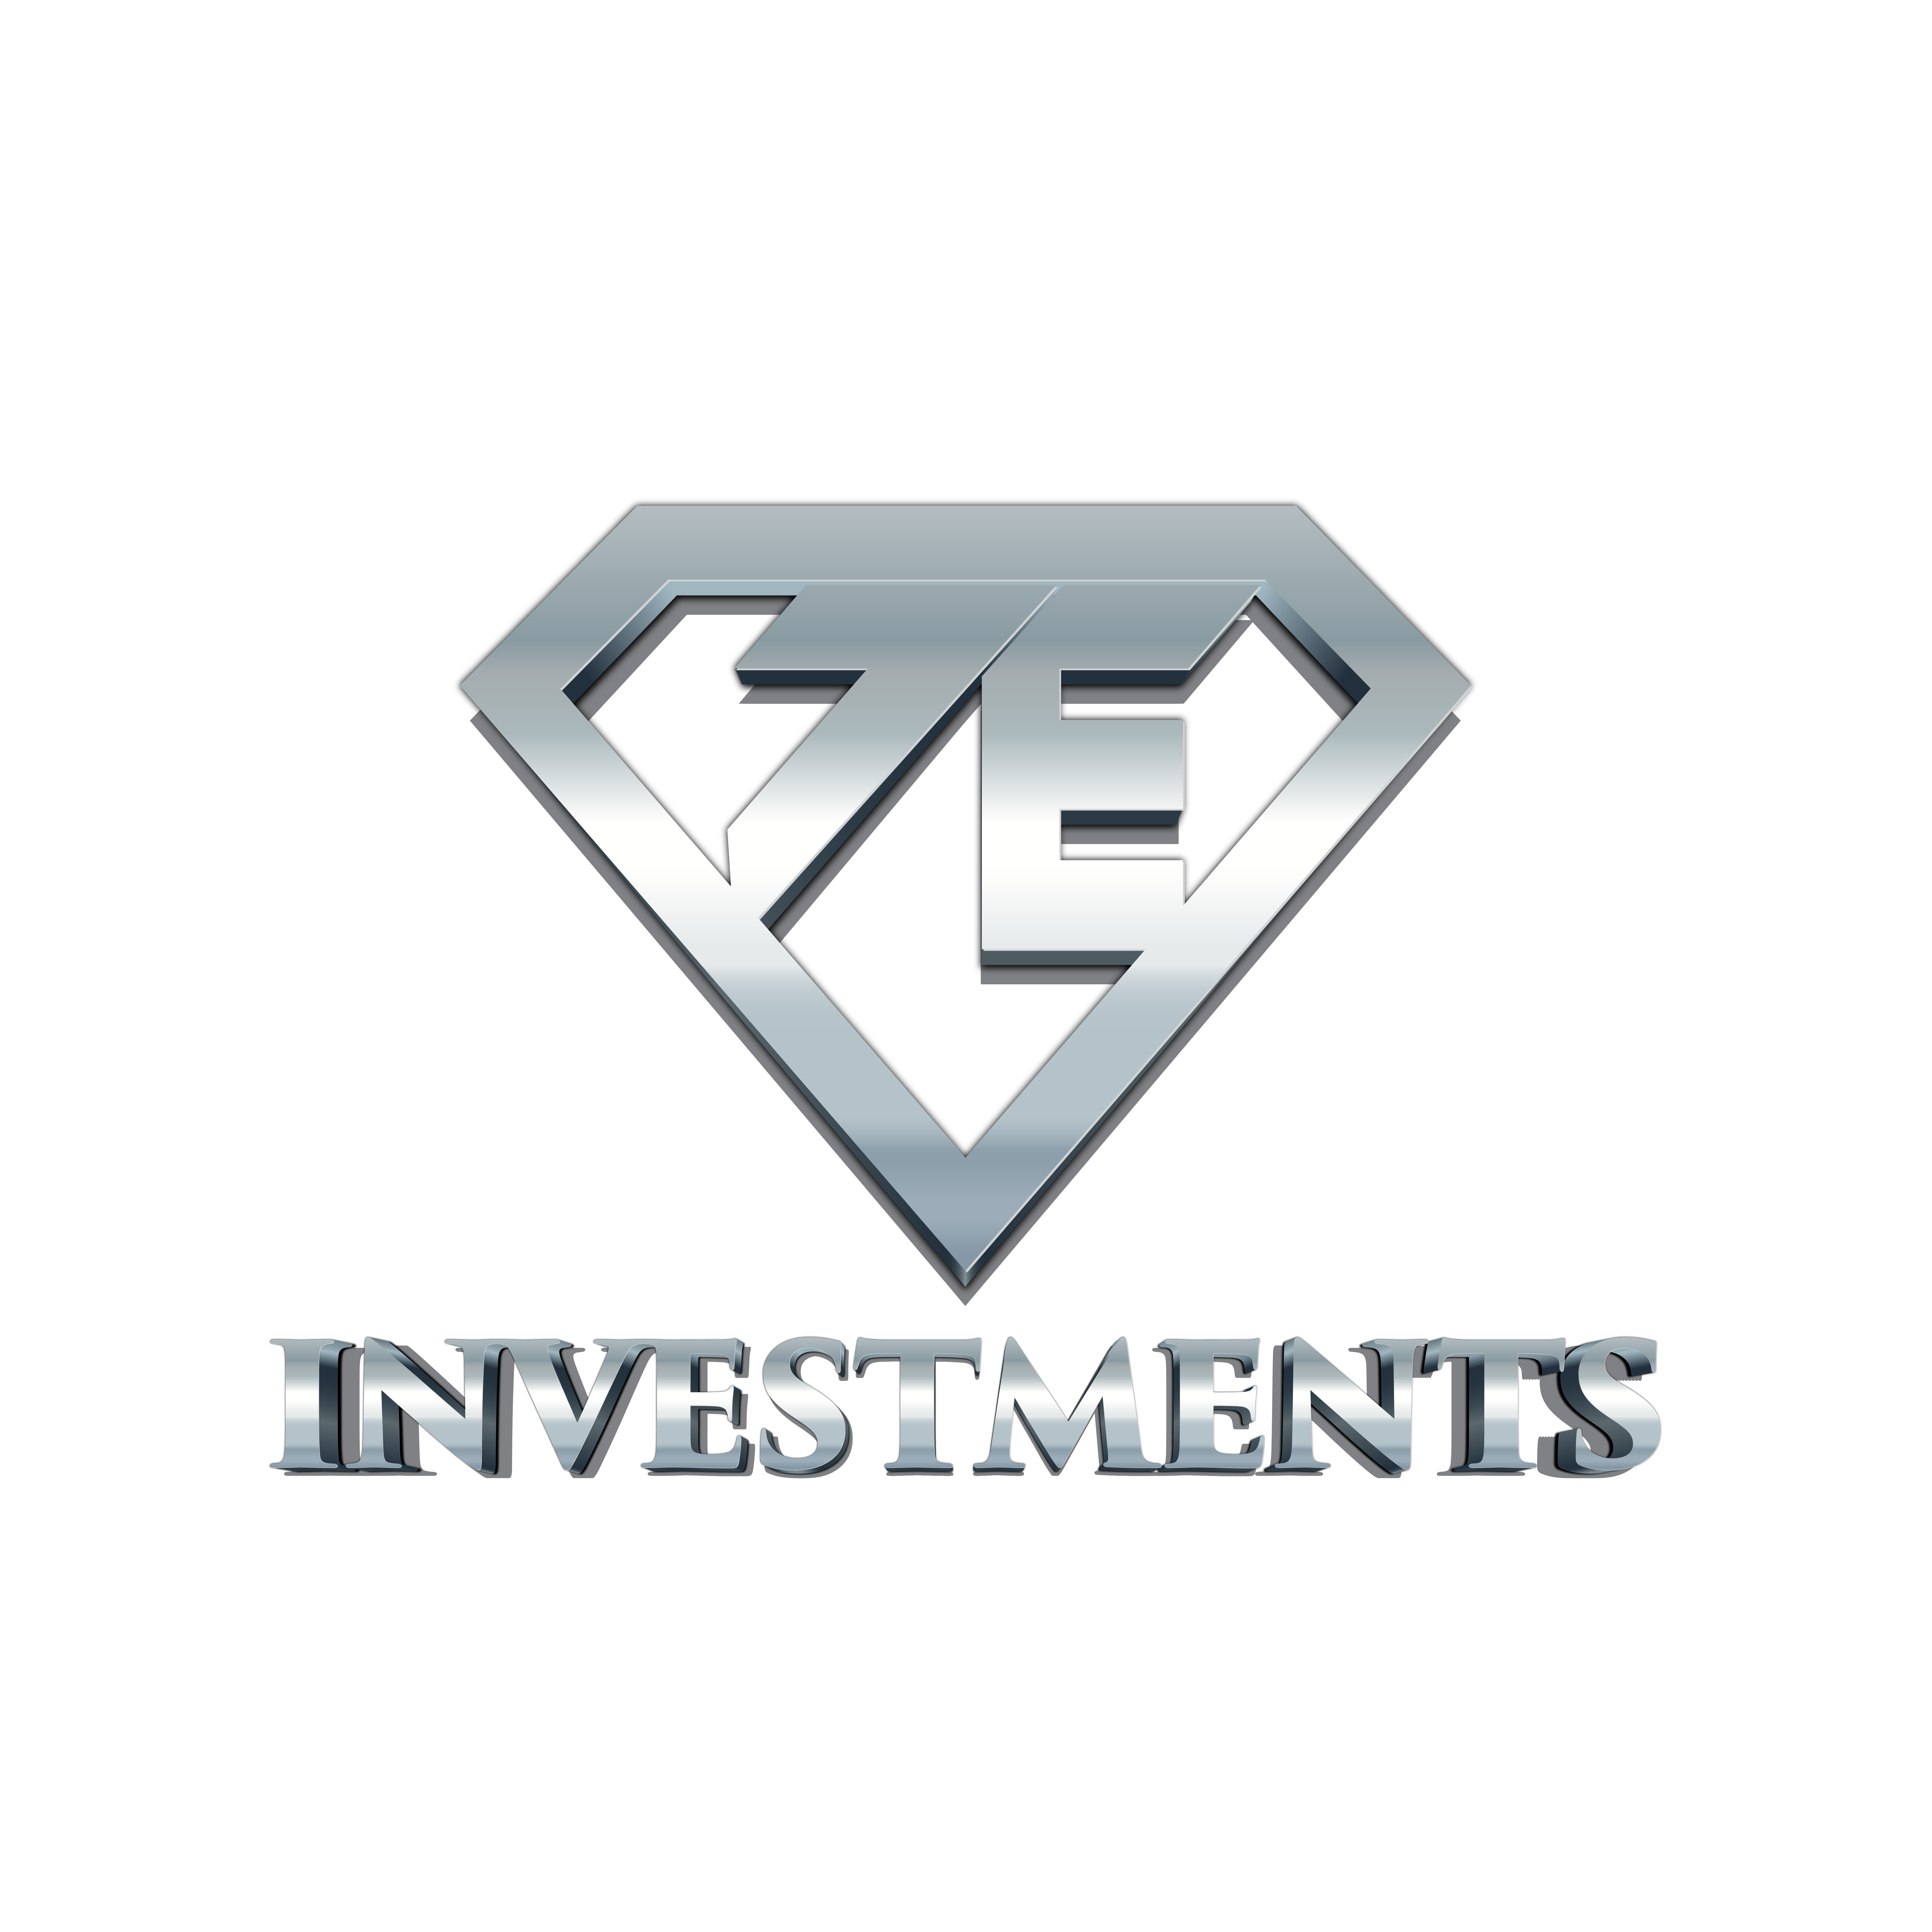 7E INVESTMENTS